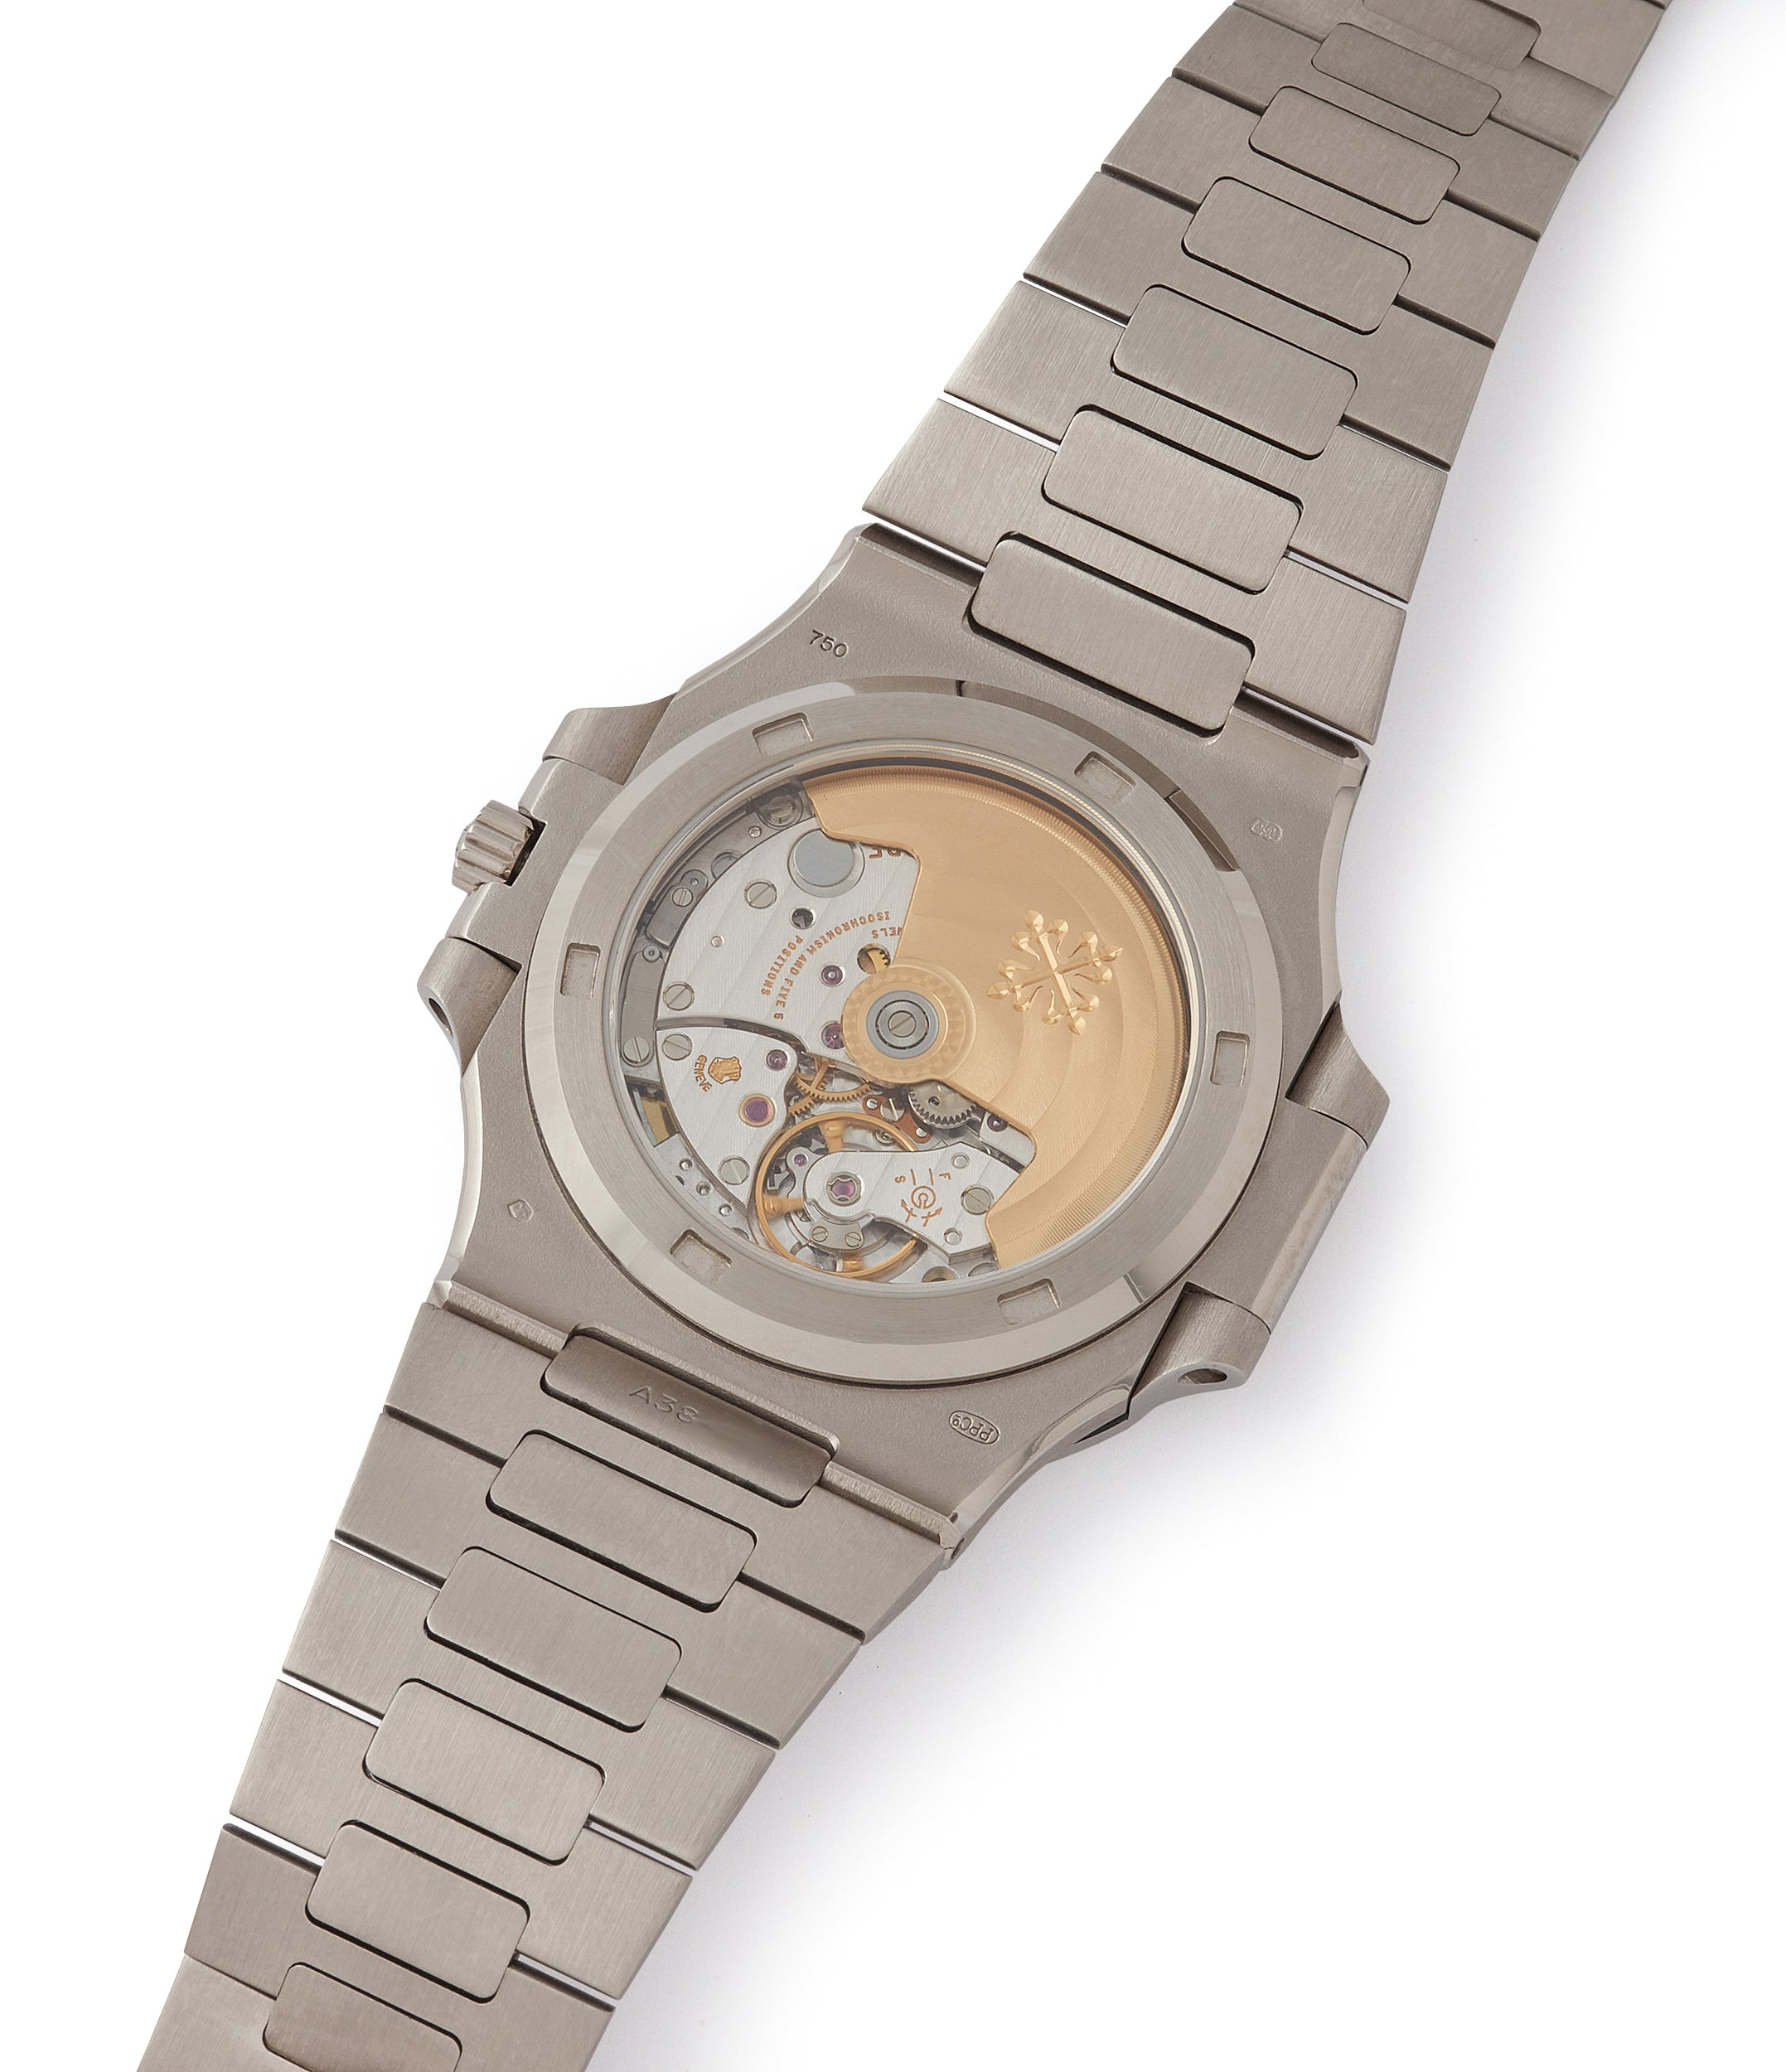 Patek Philippe movement Nautilus 3711/1G-001 white gold pre-owned watch for sale online at A Collected Man London UK specialist of rare watches